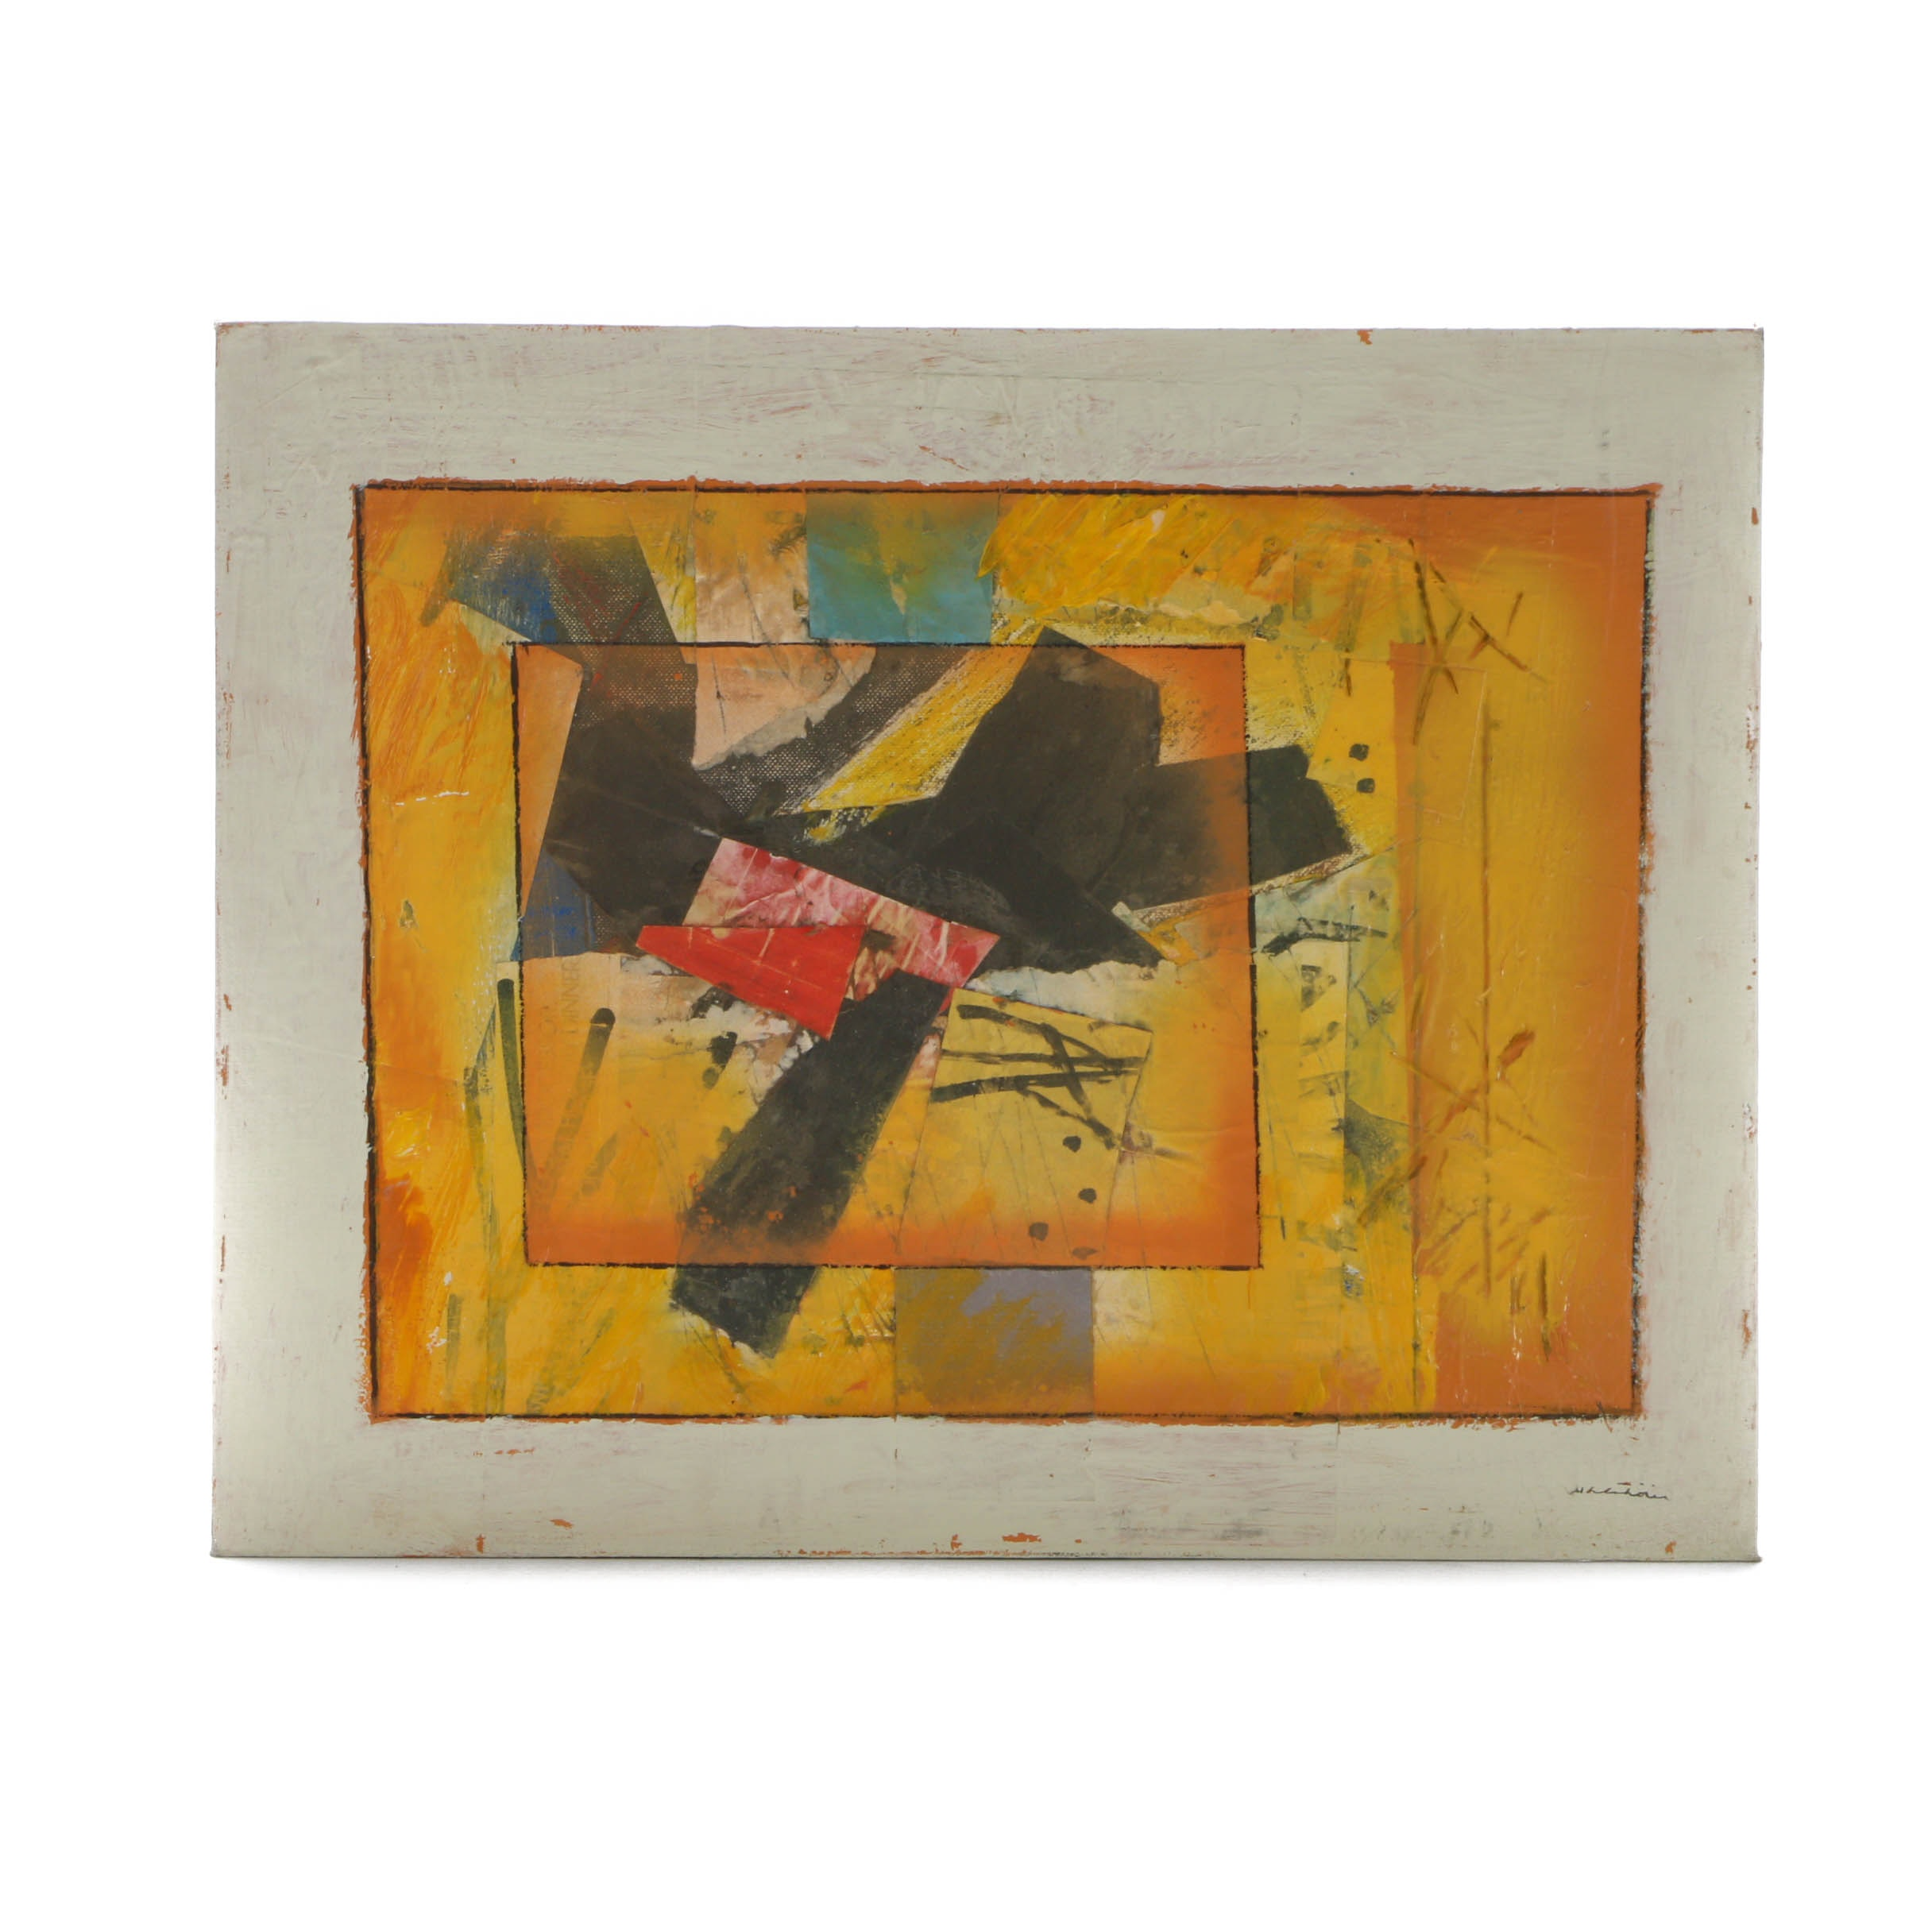 Ronald Ahlström Original Signed Mixed Media Collage on Canvas Board